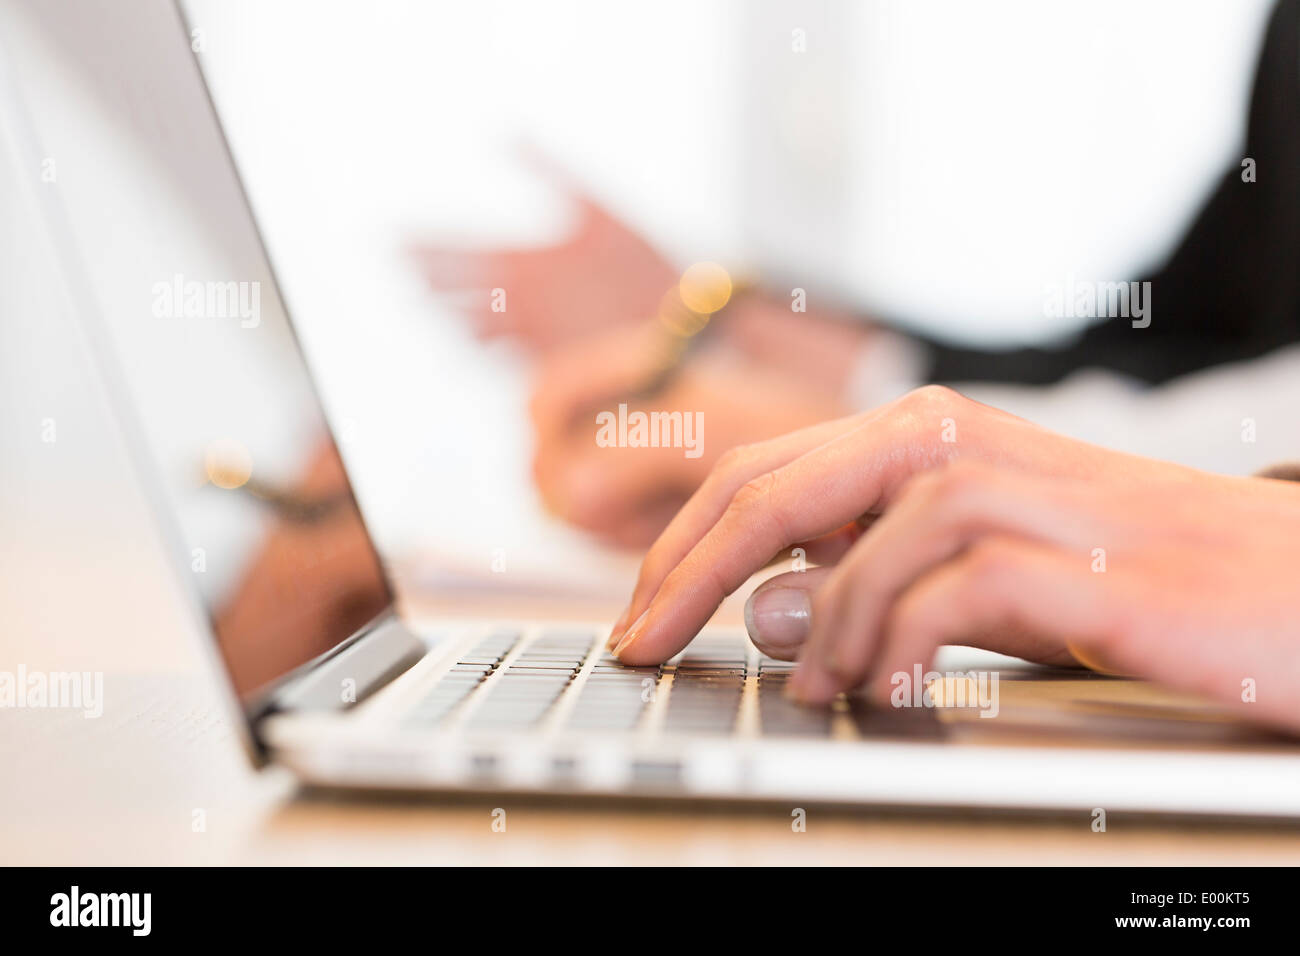 Female computer keyboard desk colleague background - Stock Image